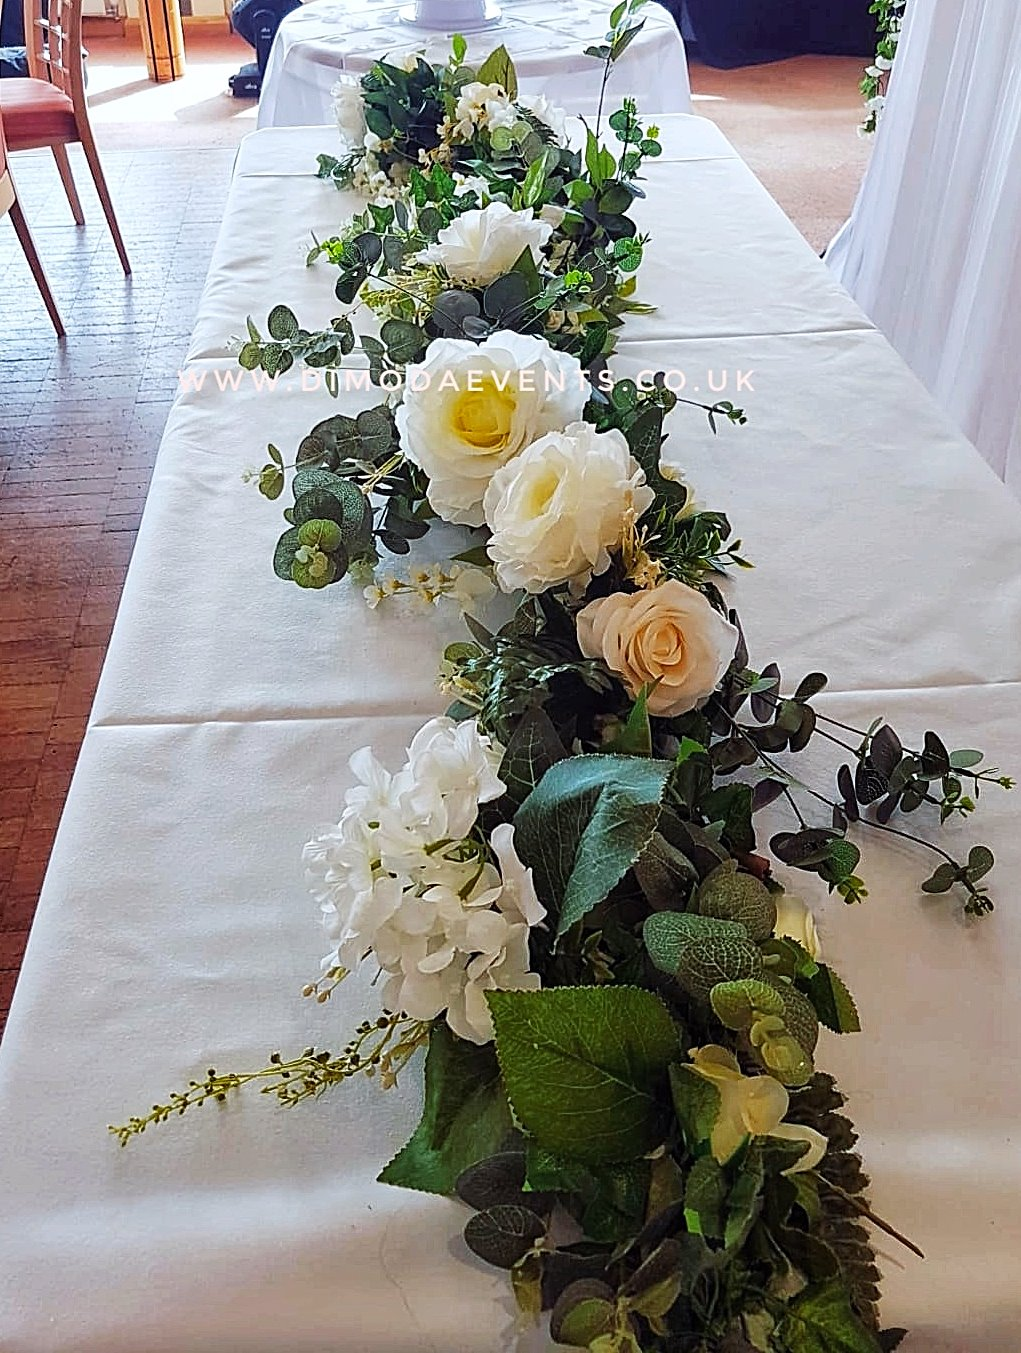 Table garland 6ft